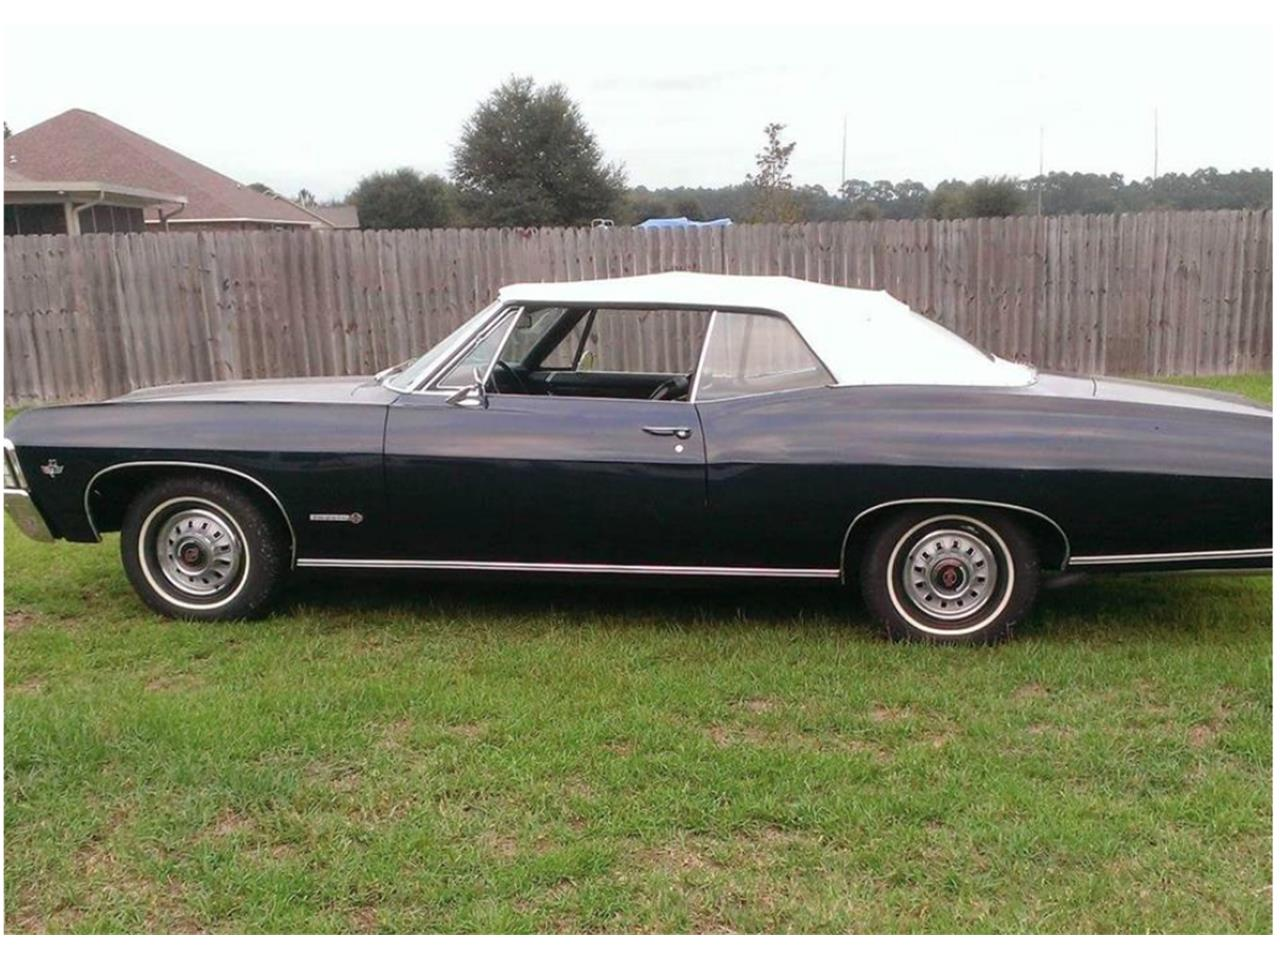 Large Picture of Classic '67 Chevrolet Impala SS Offered by a Private Seller - Q5SF